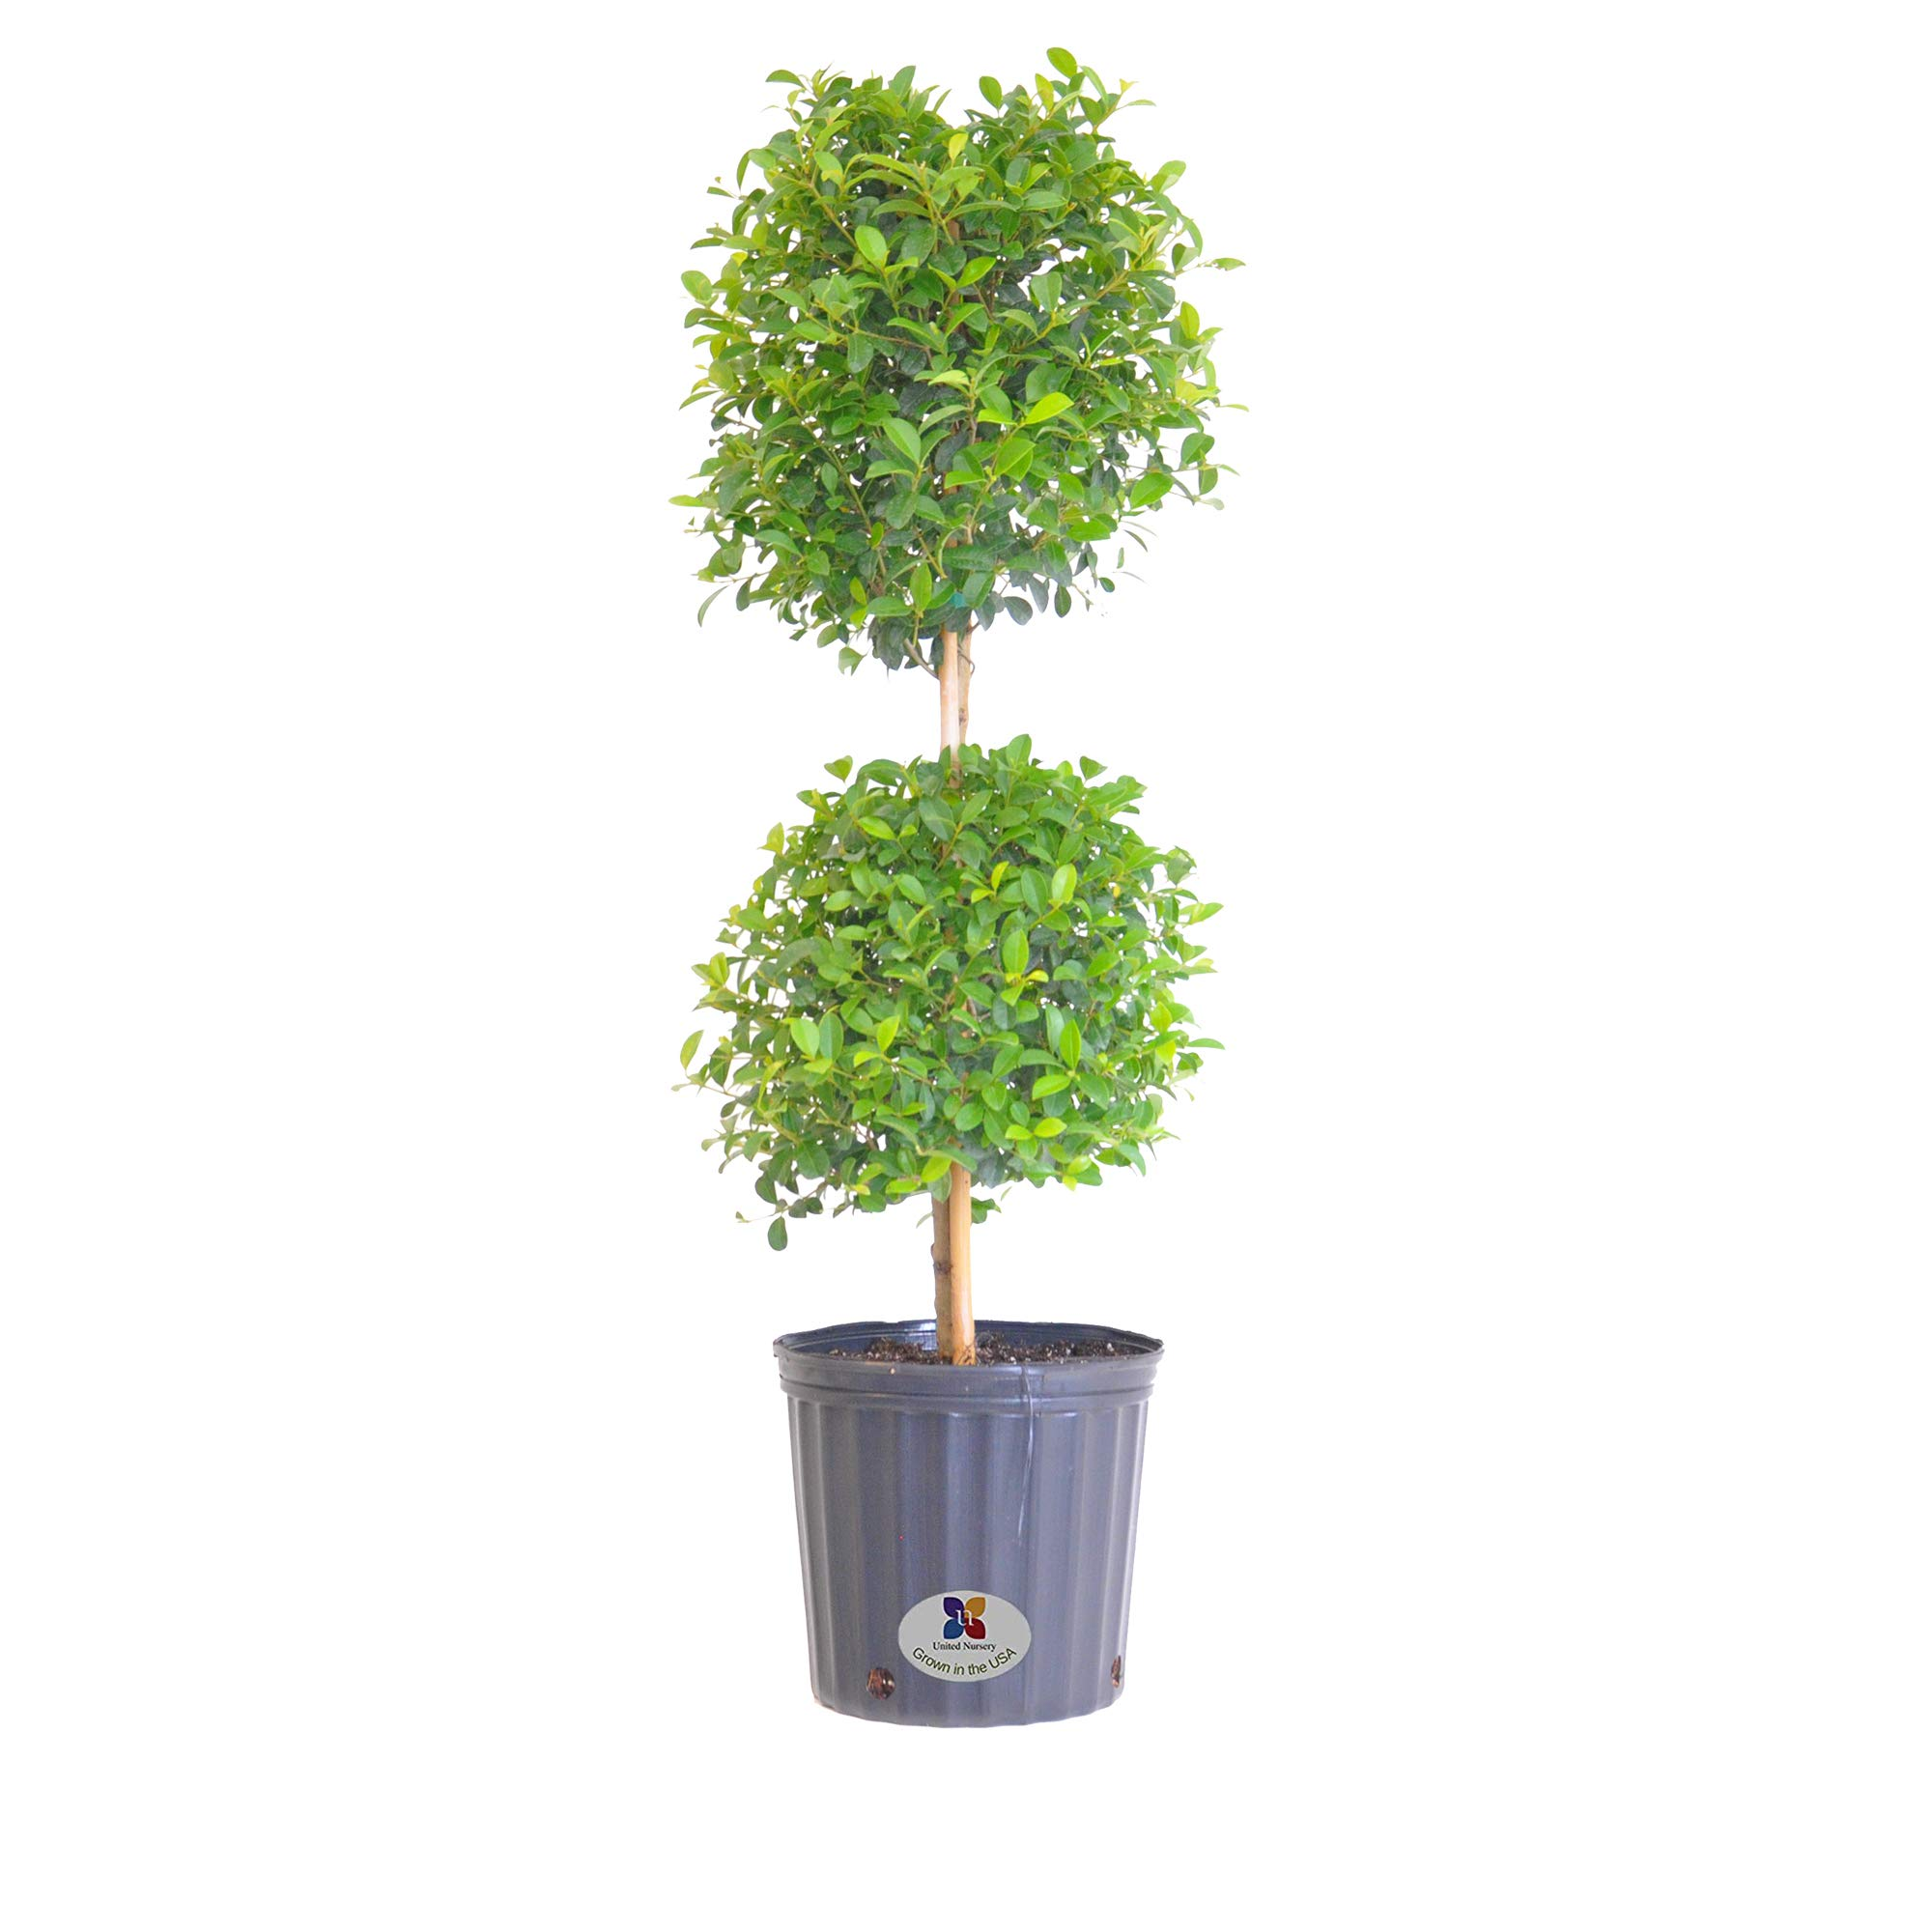 United Nursery Eugenia Topiary Live Outdoor Euginia Myrtifolia Plant Shipped in 9.25 inch Grower Pot 39-41 inches